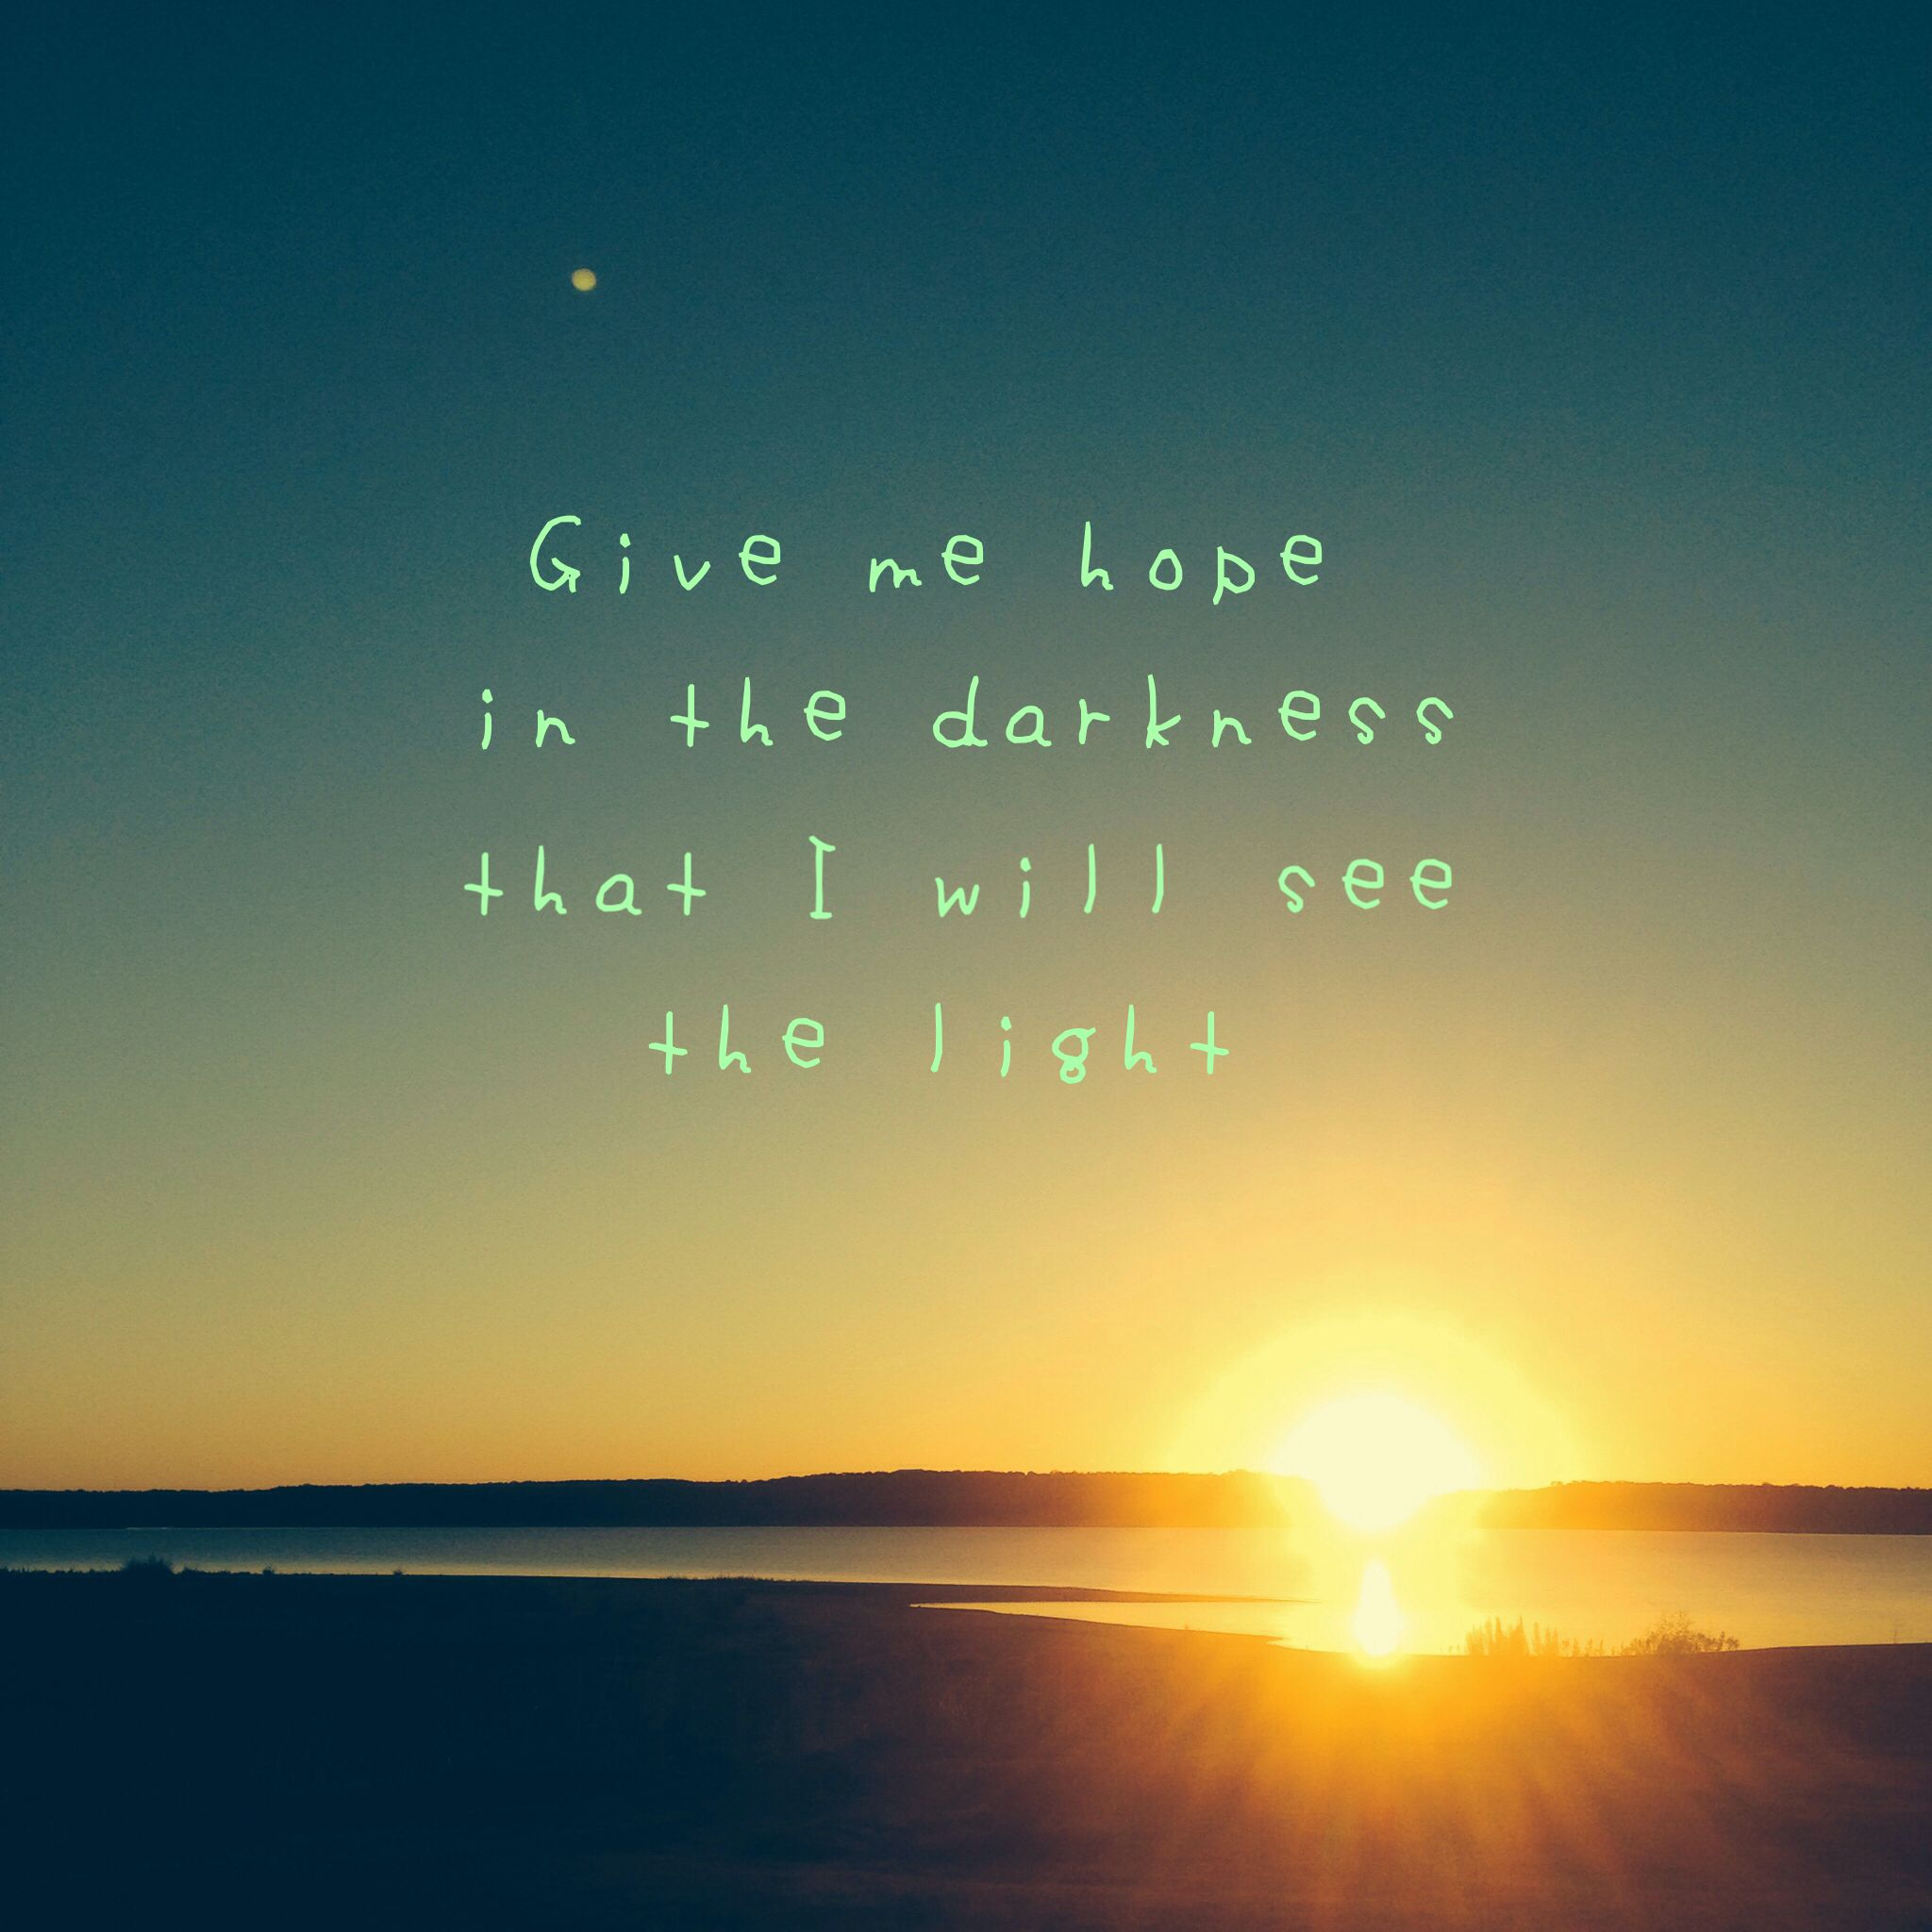 'Give me hope in the darkness that I will see the light